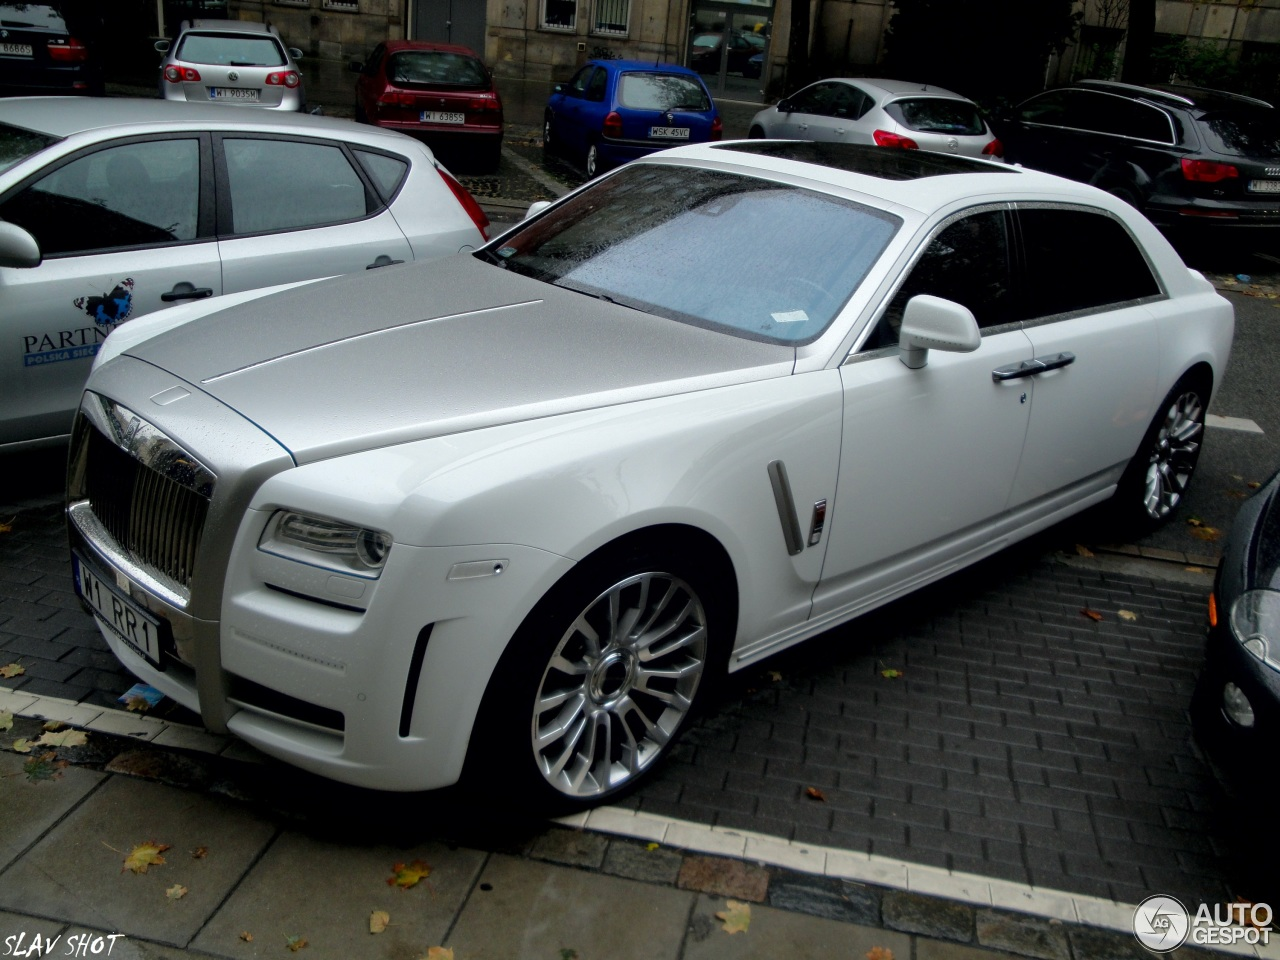 Rolls Royce Mansory White Ghost Ewb Limited 6 August